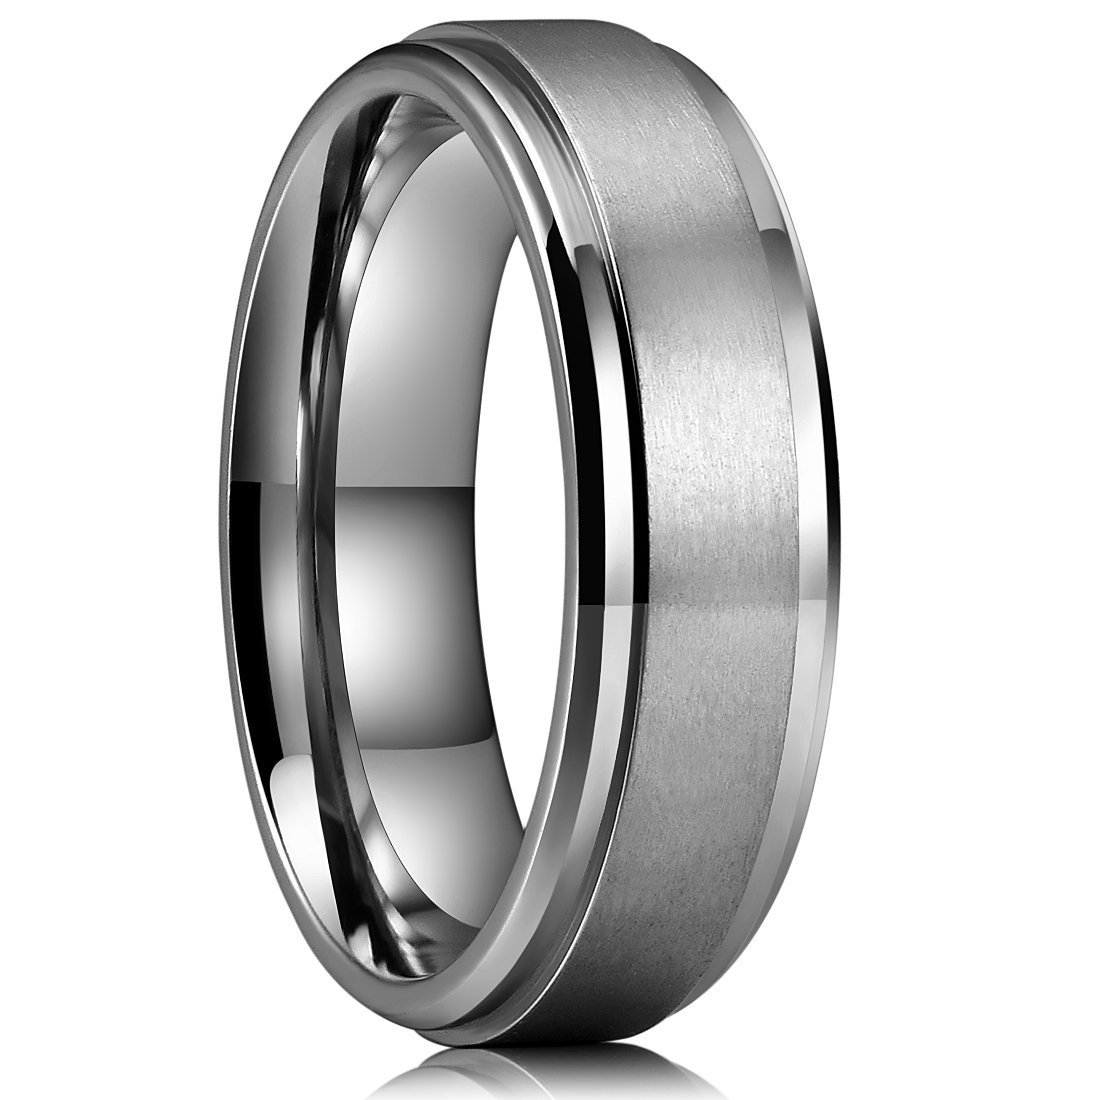 King Will Basic 6mm 7mm 8mm 9mm Mens Titanium Wedding Ring Matte Finished Wedding Band Comfort Fit Engagement Ring AH-TRM009